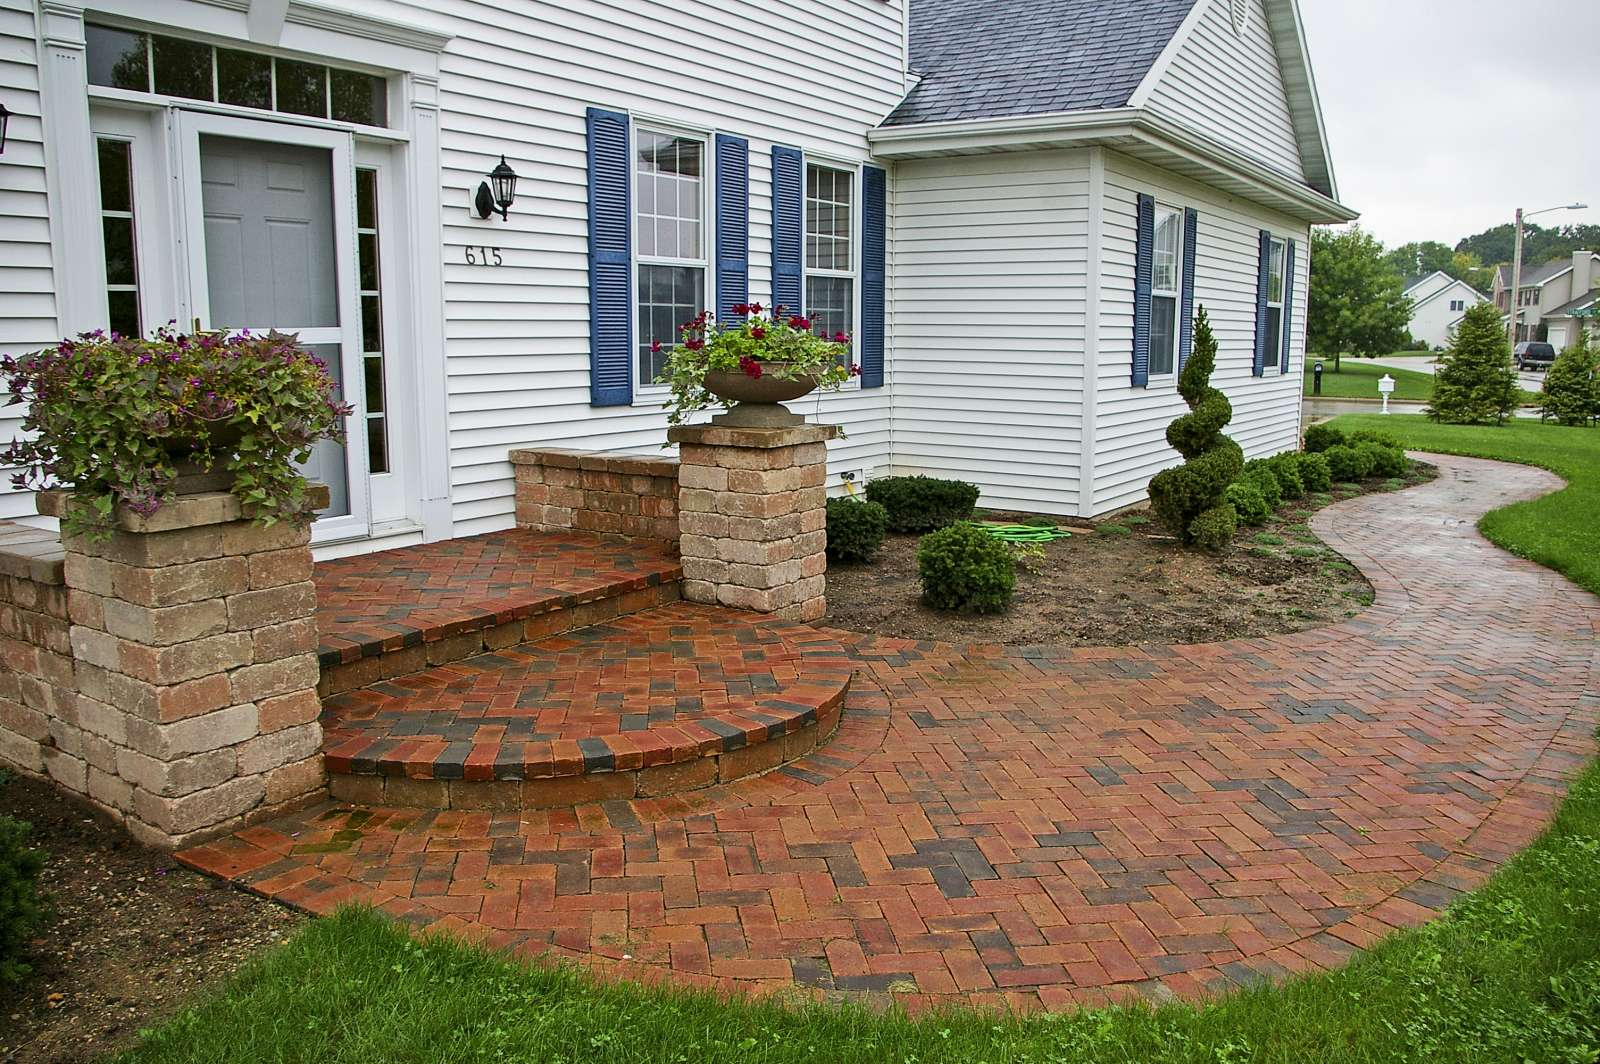 Landscaping Design of Patios, Walkways, and Paths, in ... on Landscaping And Patios  id=85654